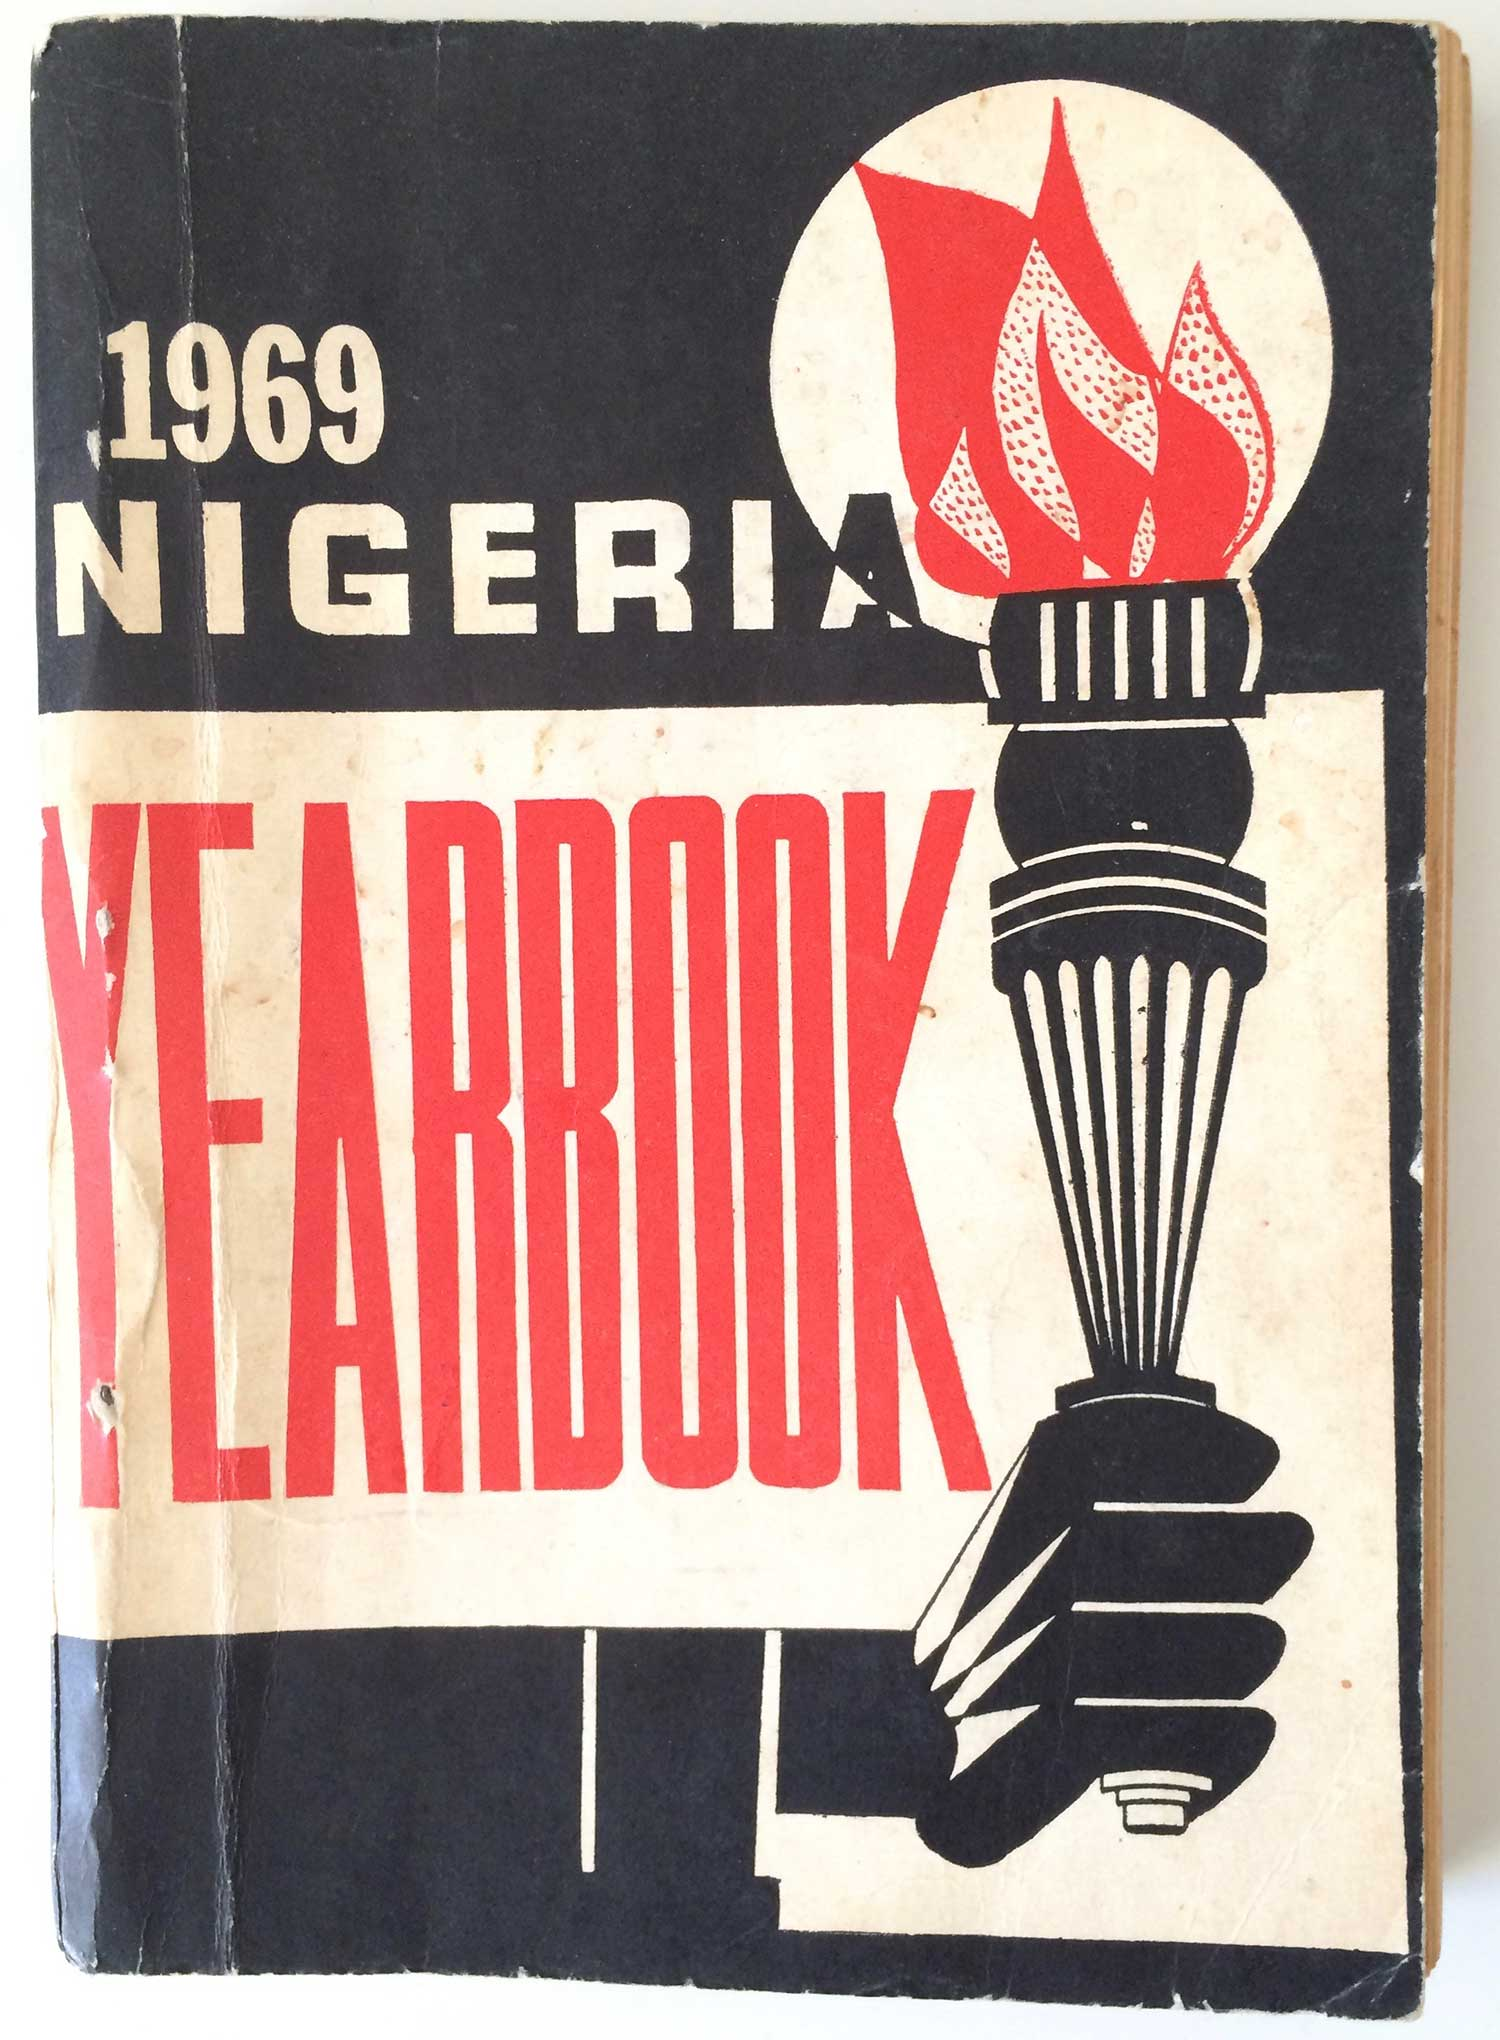 NigeriaYearbook69_cover